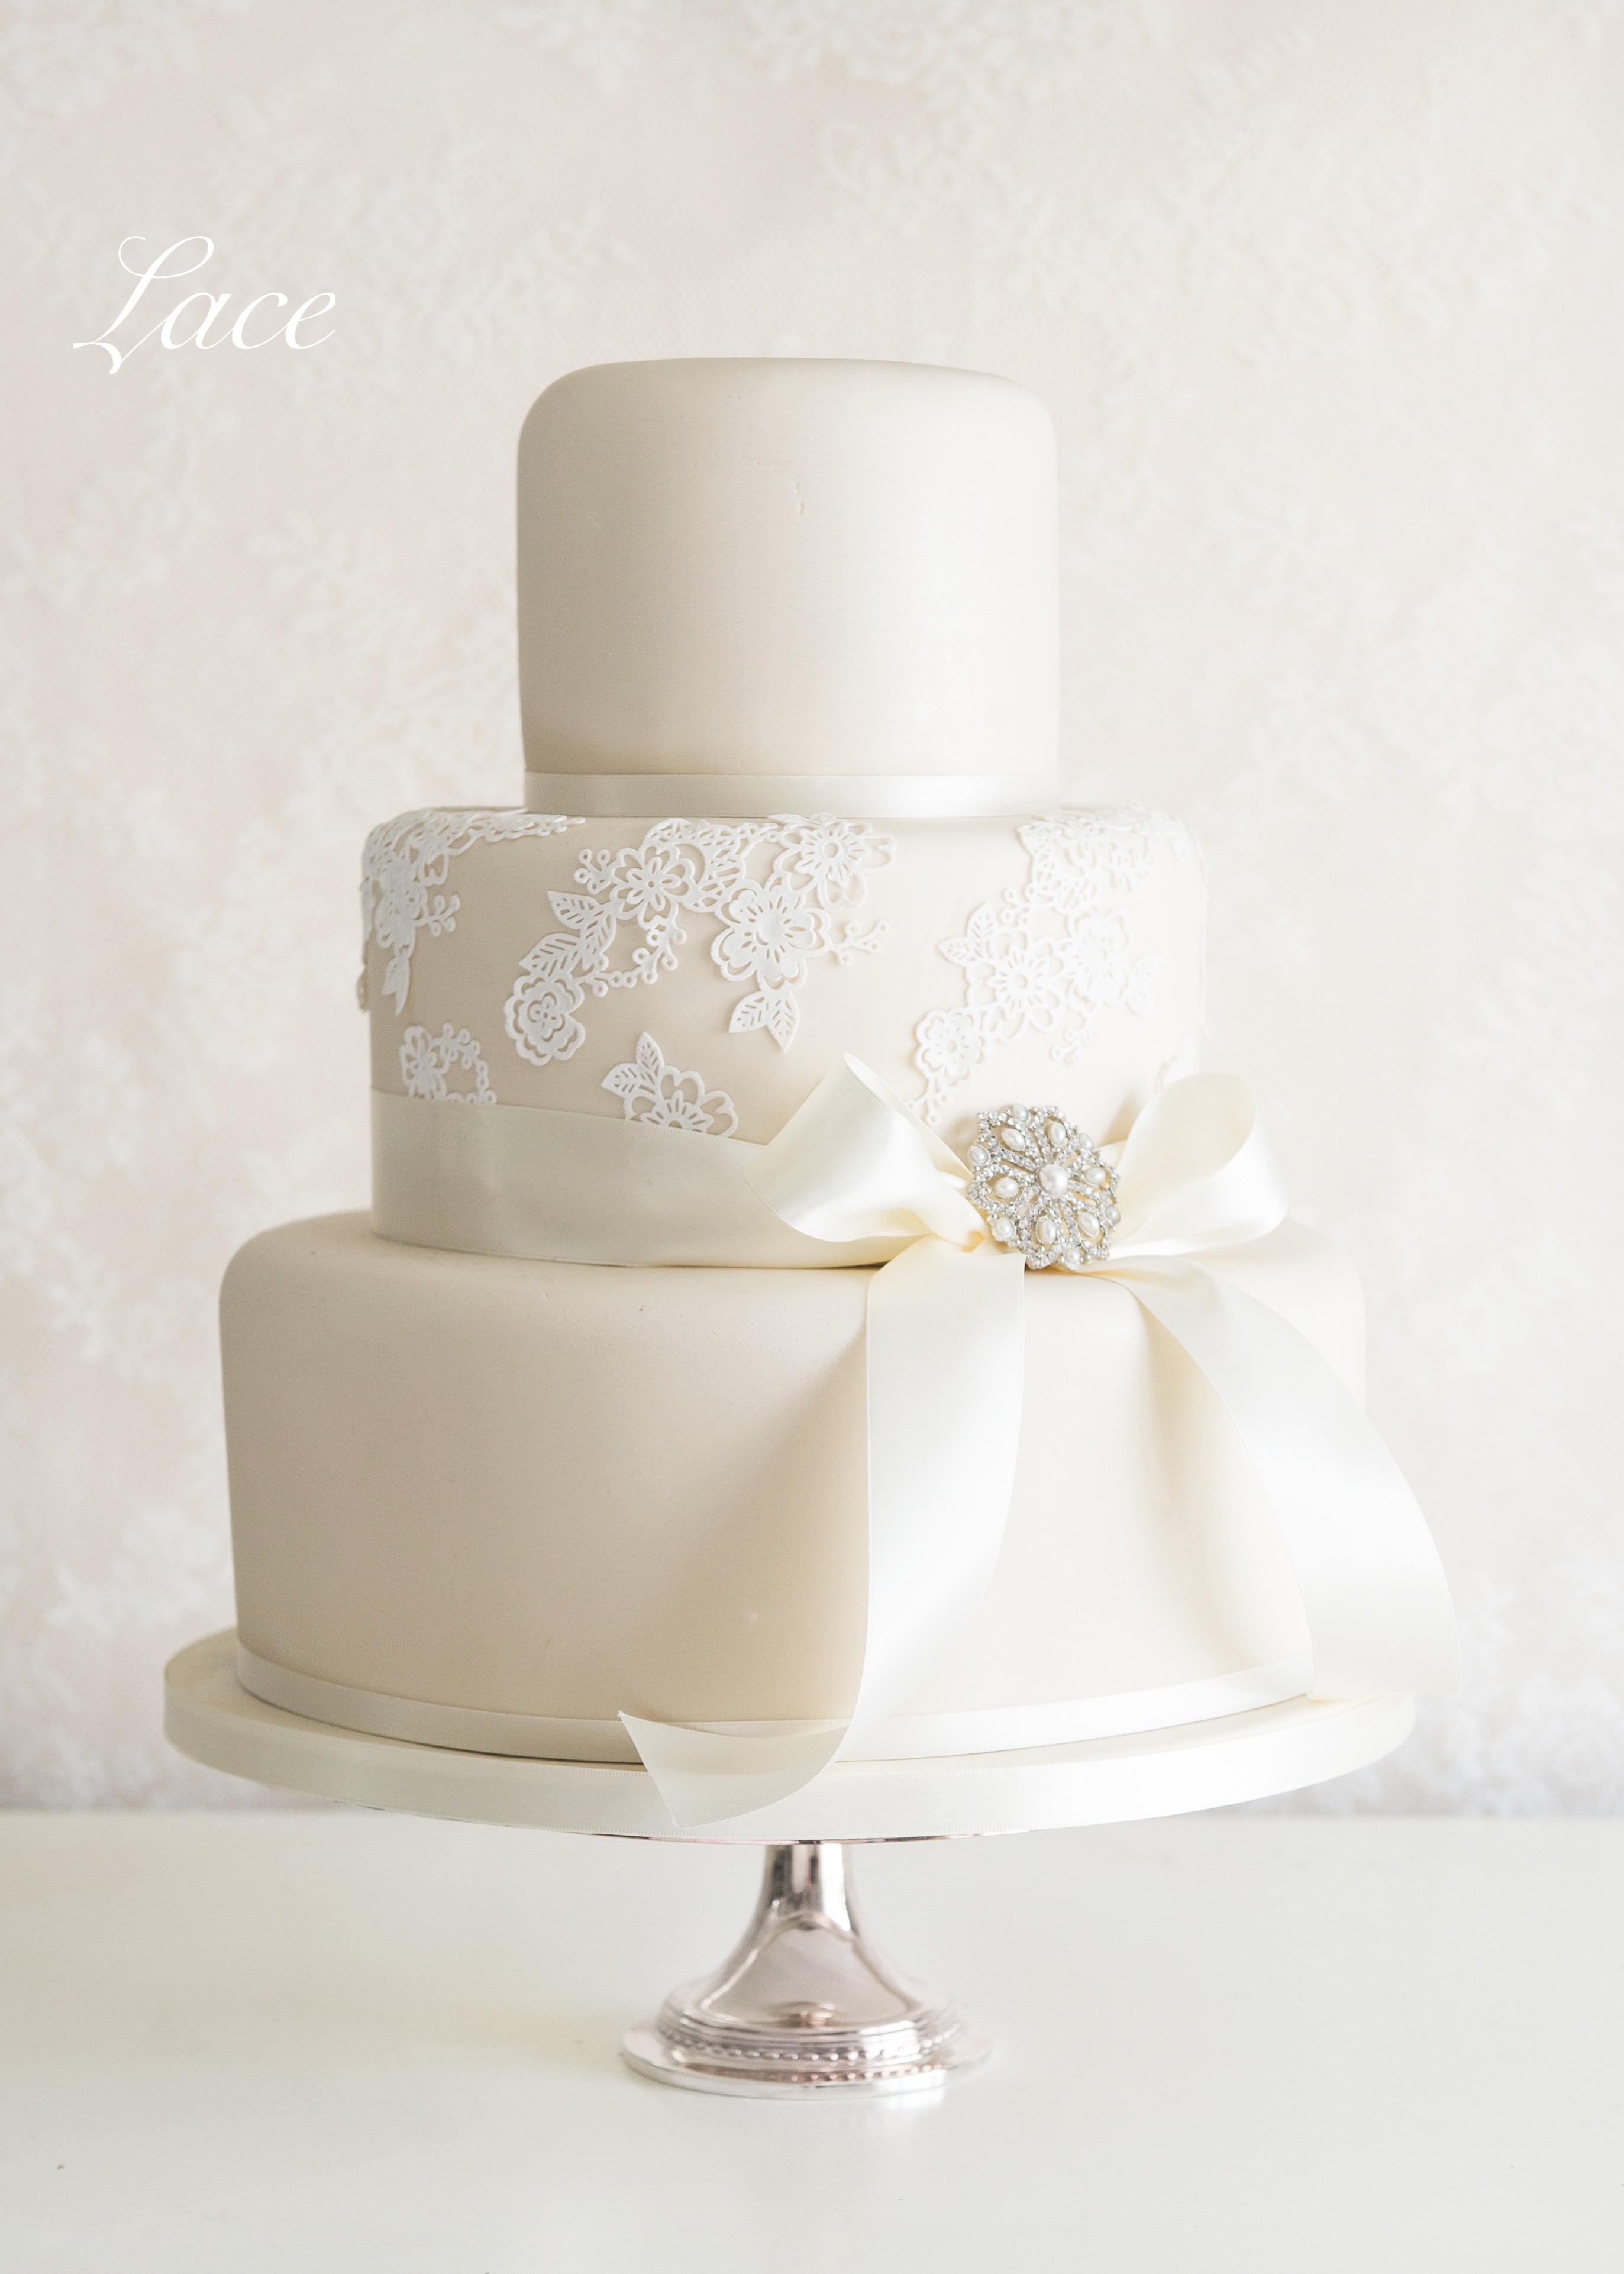 Budget Wedding Cakes Dartford Bexley Sidcup Hall Of Cakes